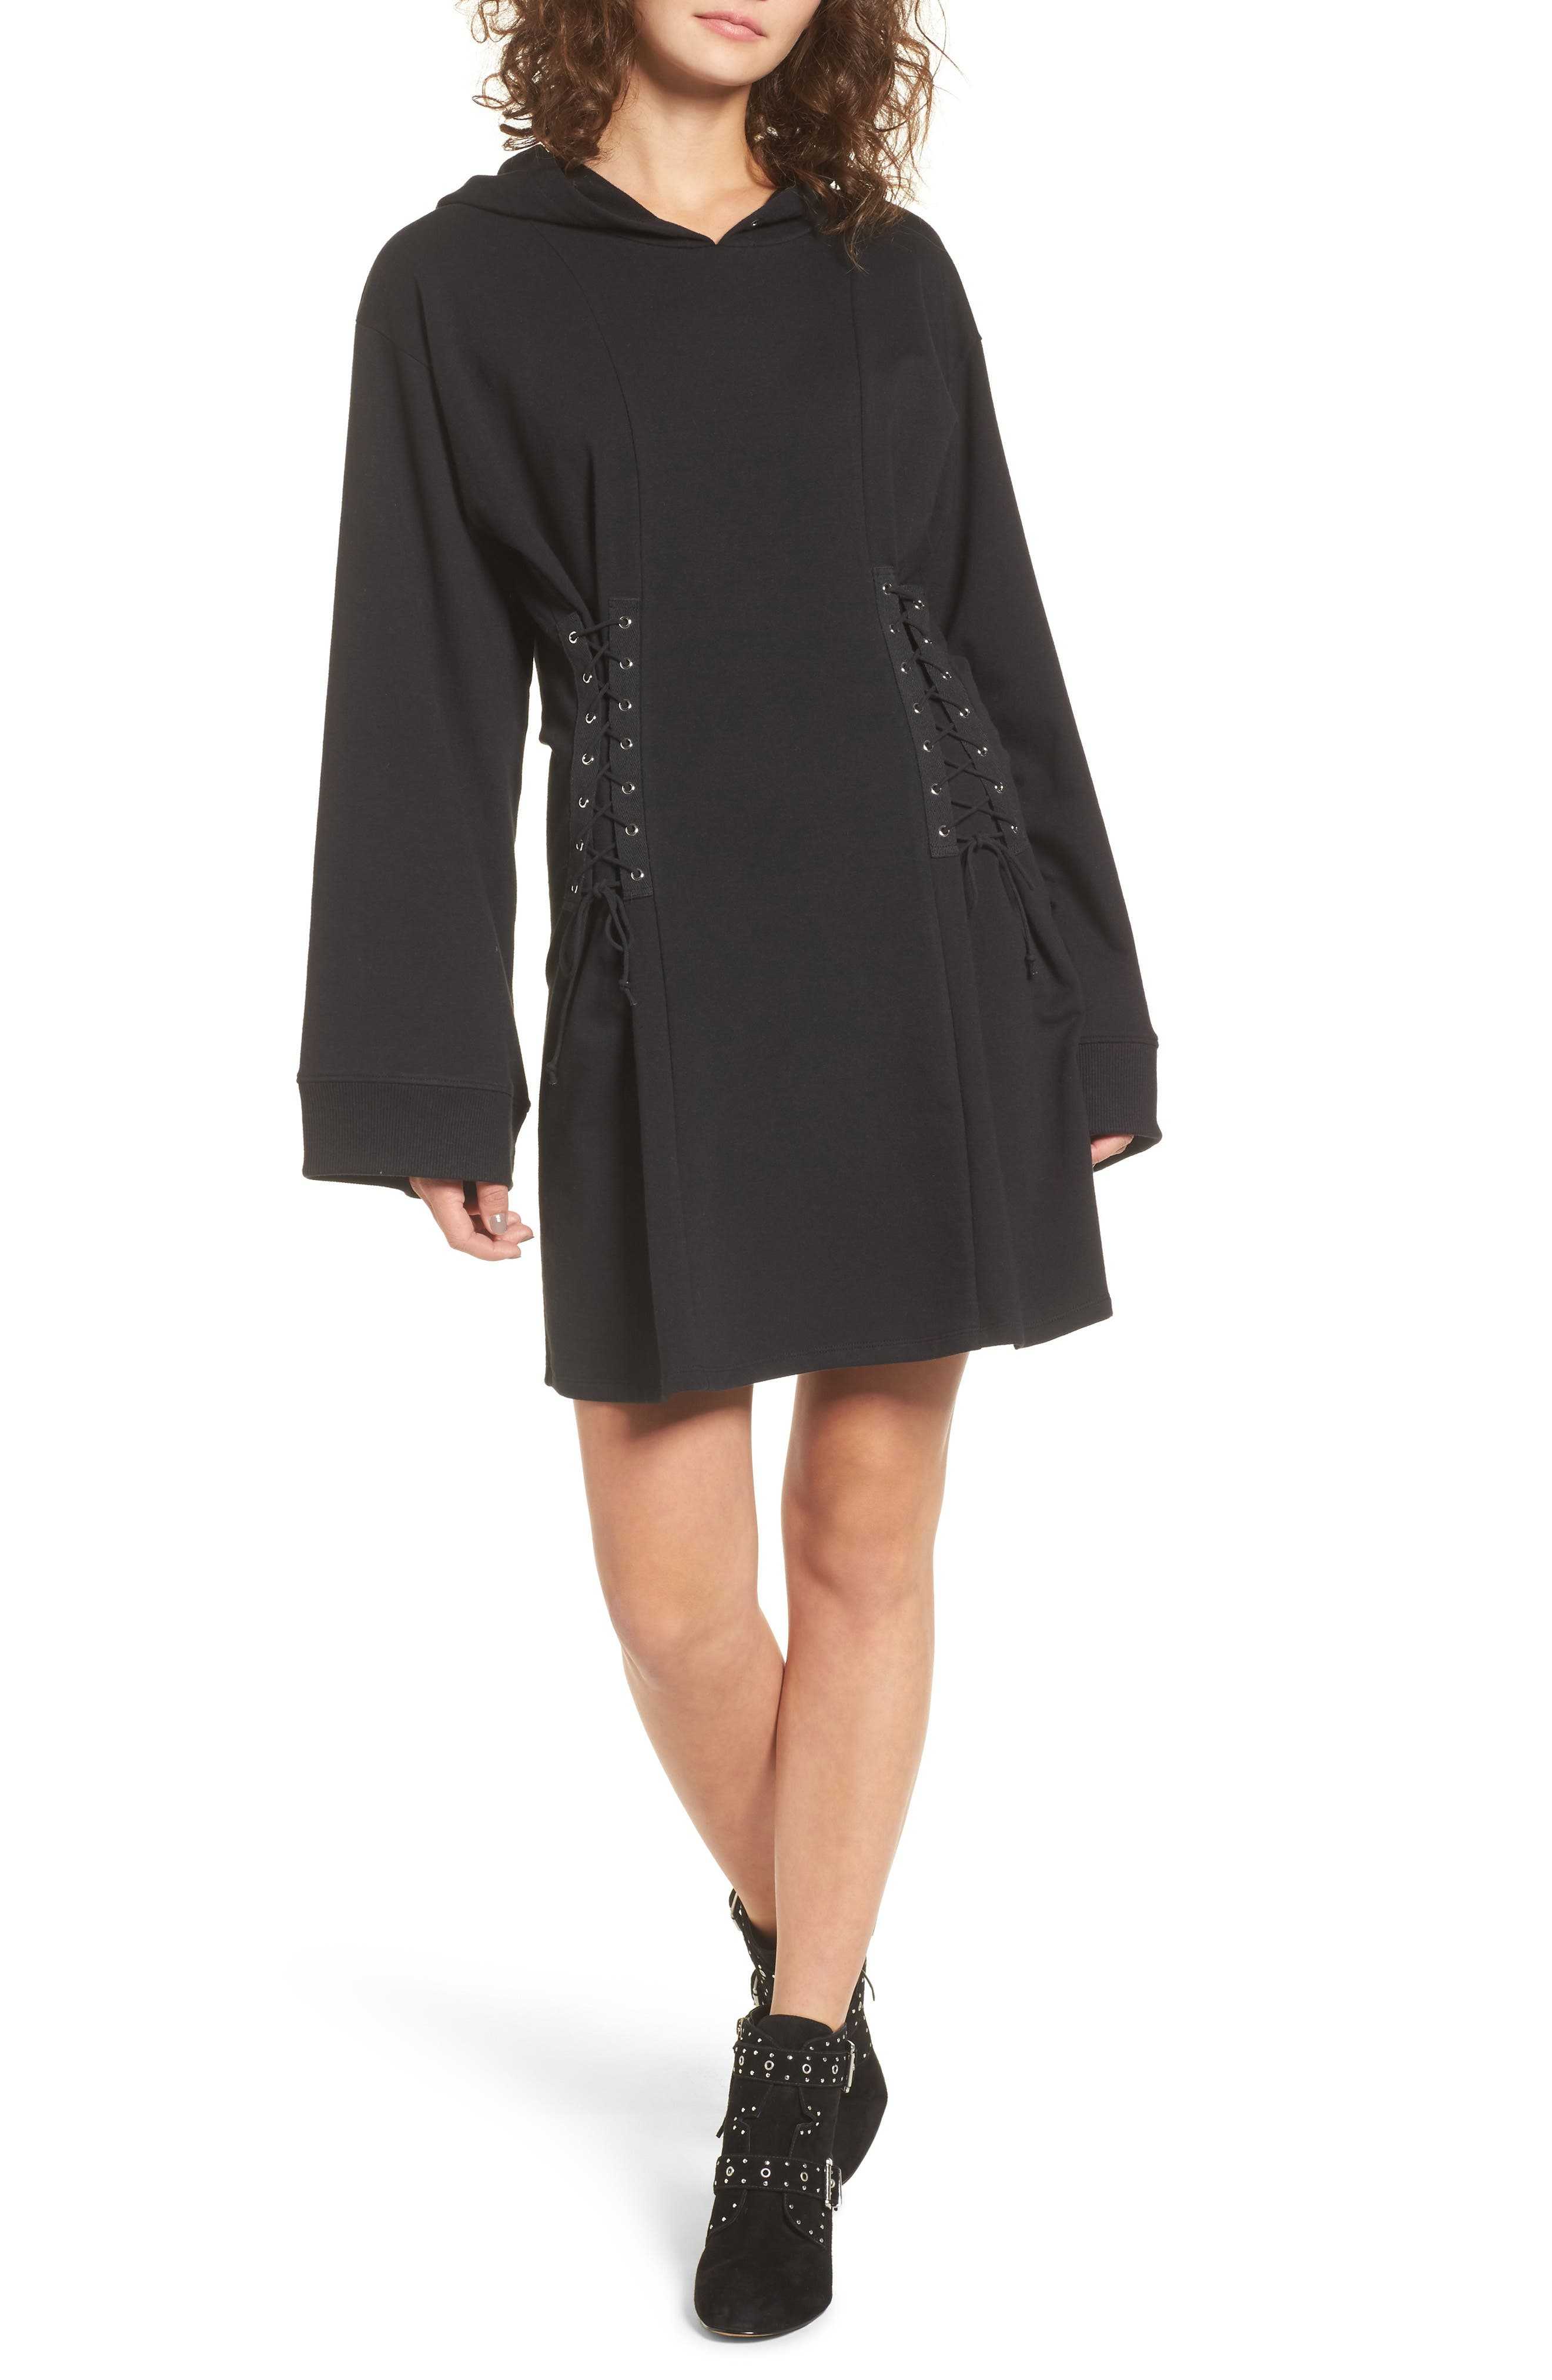 Main Image - BP. Corset Hoodie Sweatshirt Dress